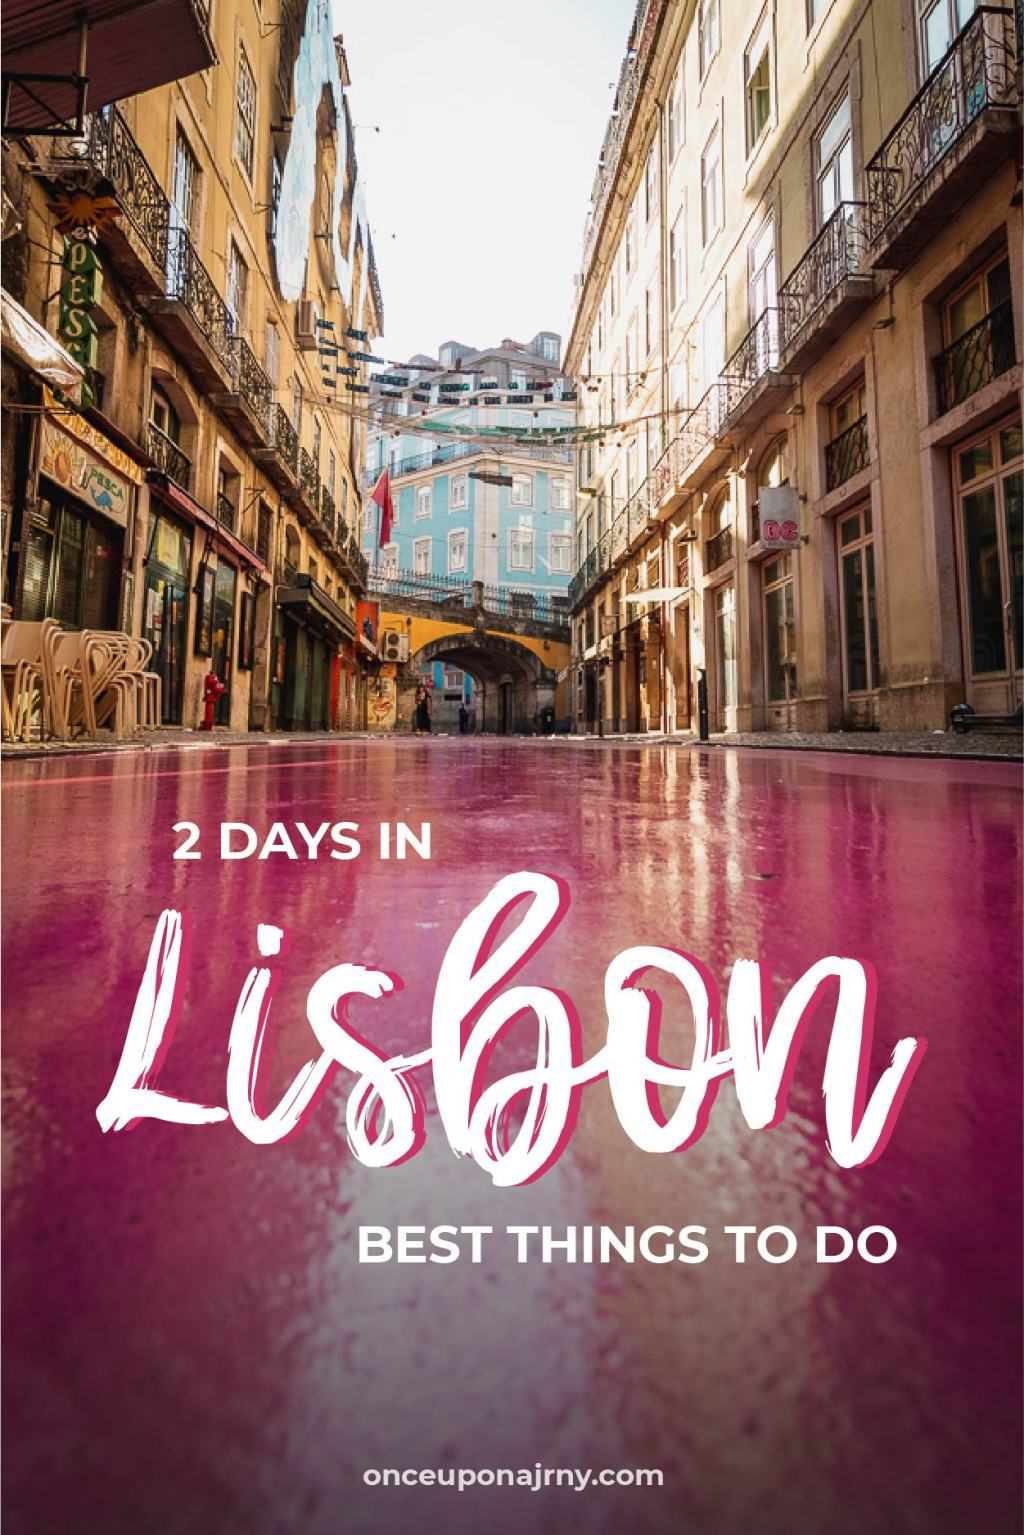 2 Days in Lisbon Best Things To Do